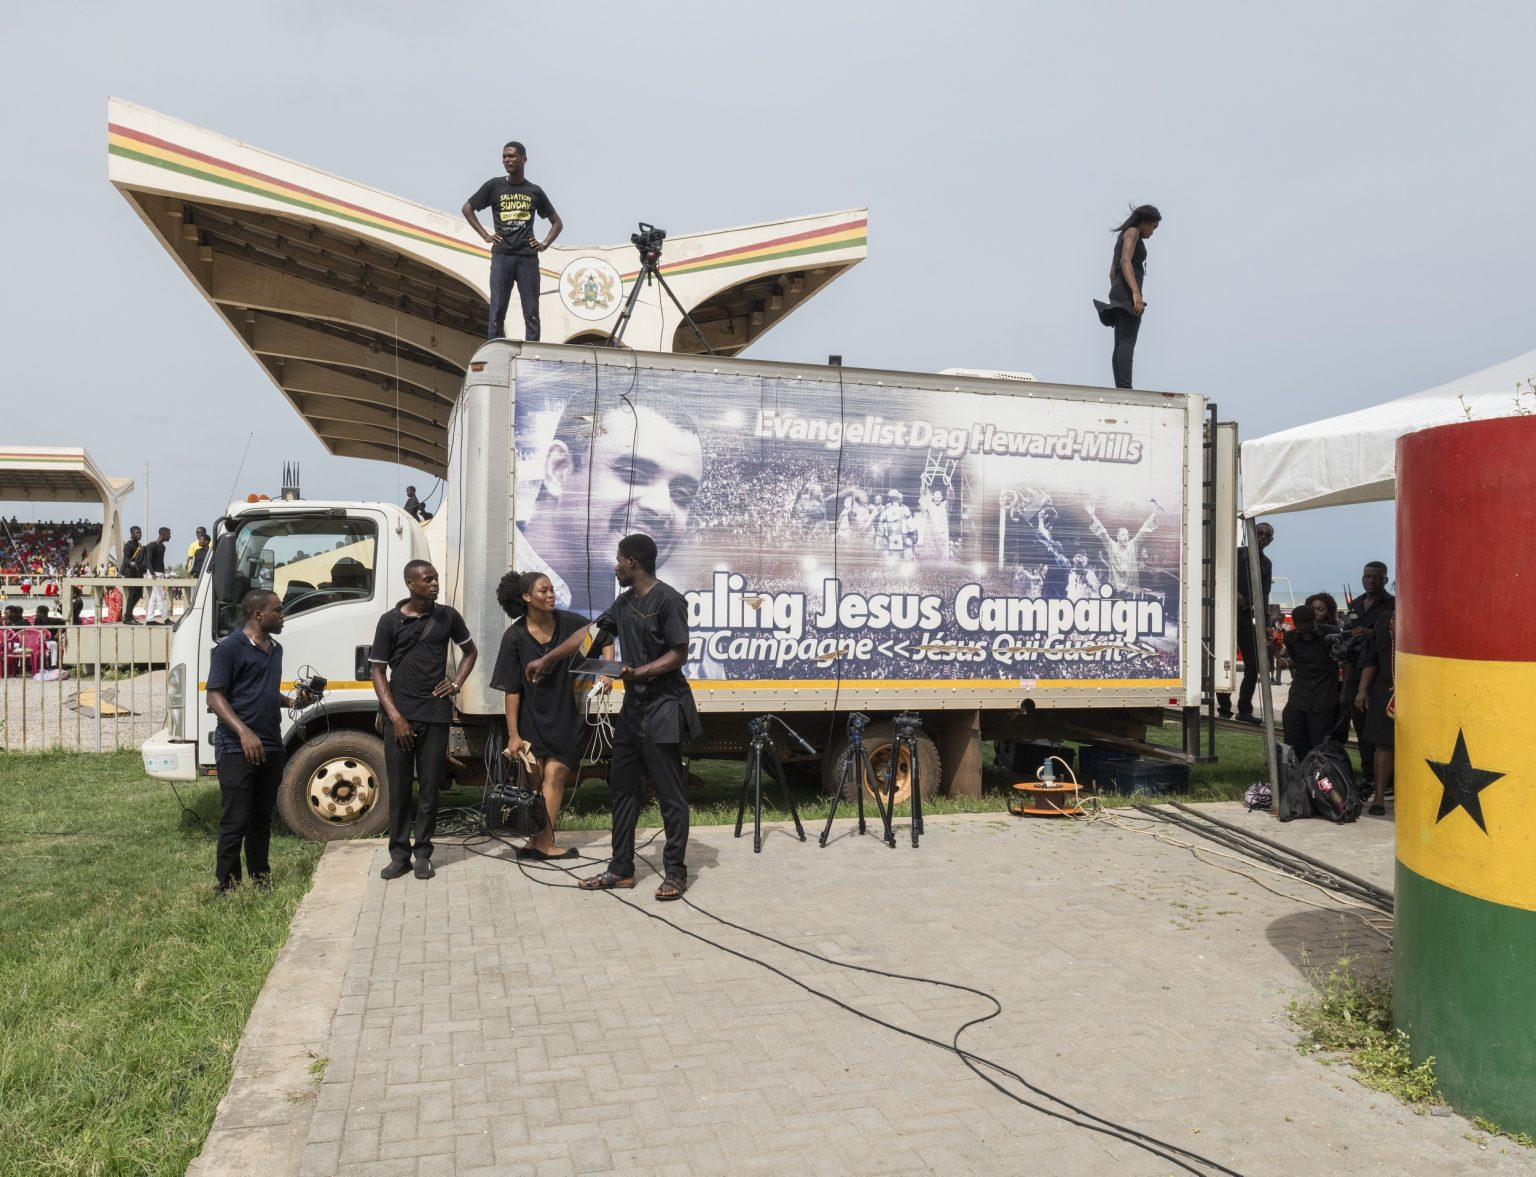 """Accra, Republic of Ghana, April 2019 -Media team during the annual Easter event titled """"Good Friday Miracle Service"""" held in Indipendence Square by Dag Heward-Mills.  Lighthouse Chapel International(LCI), founded in 1988 byDag Heward-Millsand headquartered inAccra it is considered to be one of the leading charismatic churches inGhana, and has over 3000 branches in over 50 countries inAfrica,Europe,Asia, theCaribbean,Australia, theMiddle Eastand theAmericas.><  Accra, Repubblica del Ghana, aprile 2019 - Media team durante l'evento annuale """"Good Friday Miracle Service"""" tenuto da Dag Heward Mills presso Indipendence Square. Lighthouse Chapel International (LCI), fondata nel 1988 da Dag Heward-Mills e con sede ad Accra, è considerata una delle principali chiese carismatiche del Ghana e conta oltre 3000 filiali in oltre 50 paesi in Africa, Europa, Asia, i Caraibi, l'Australia, il Medio Oriente e le Americhe."""